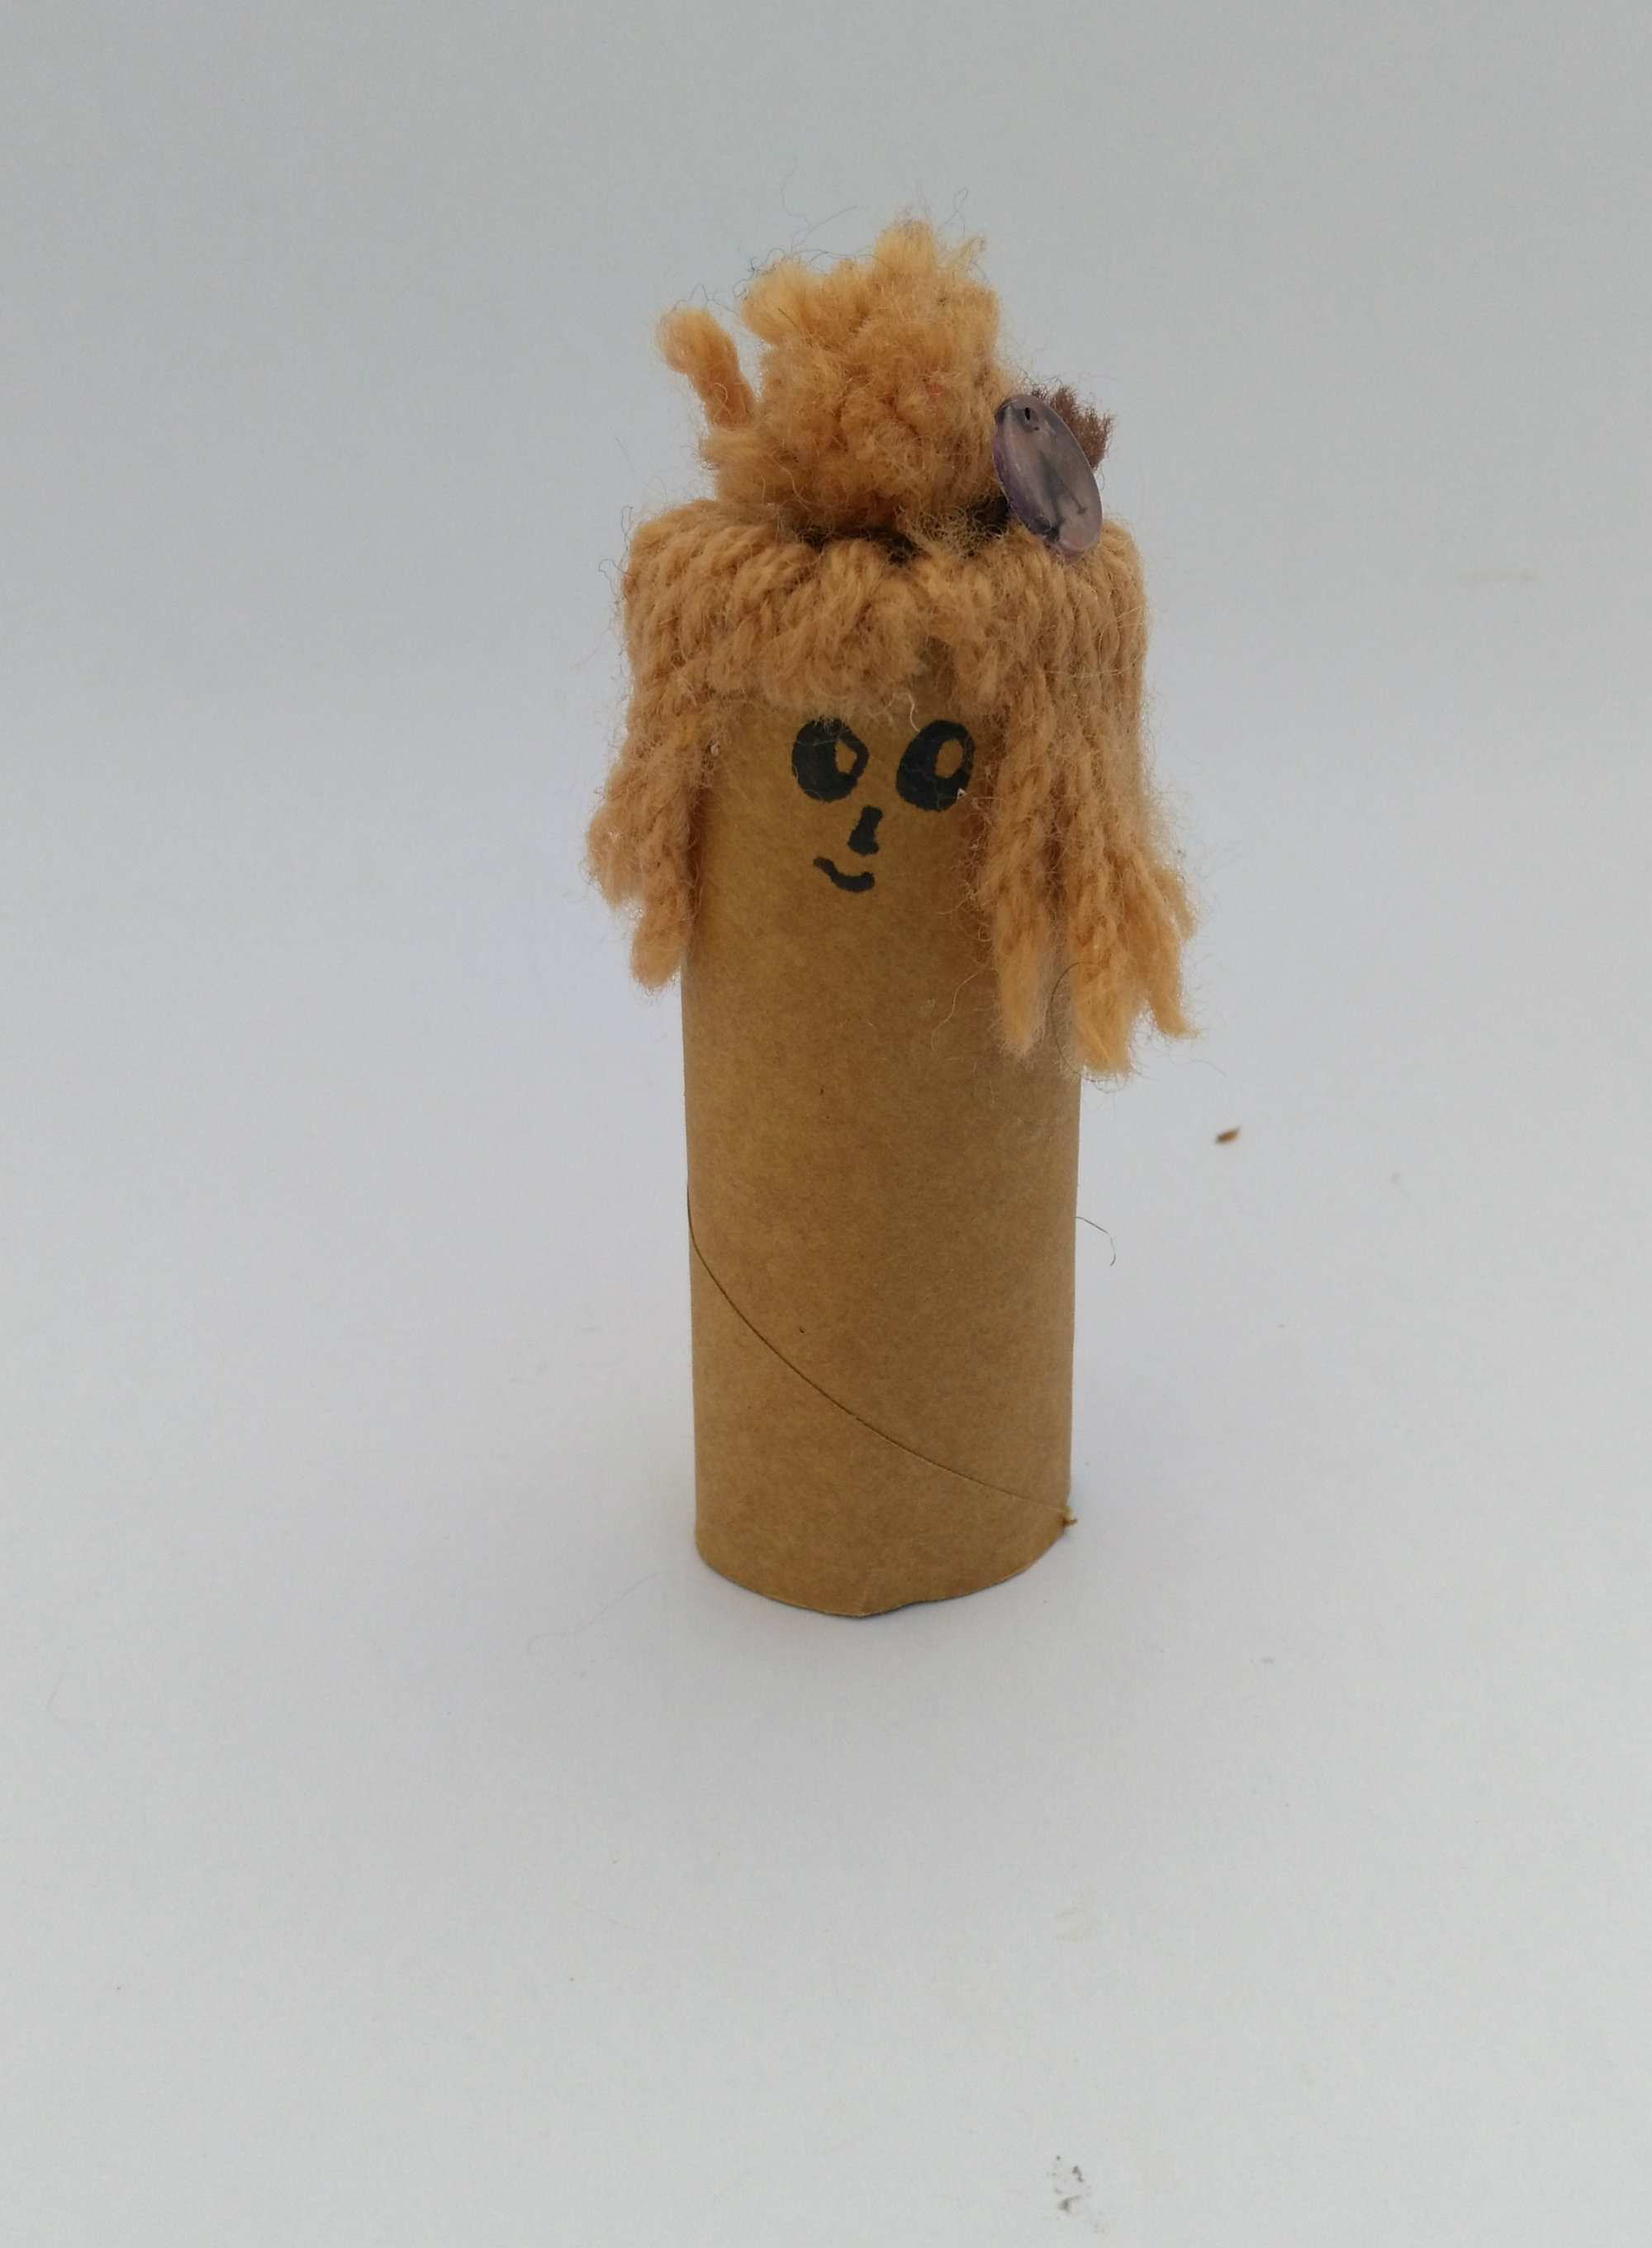 Toilet roll with hair